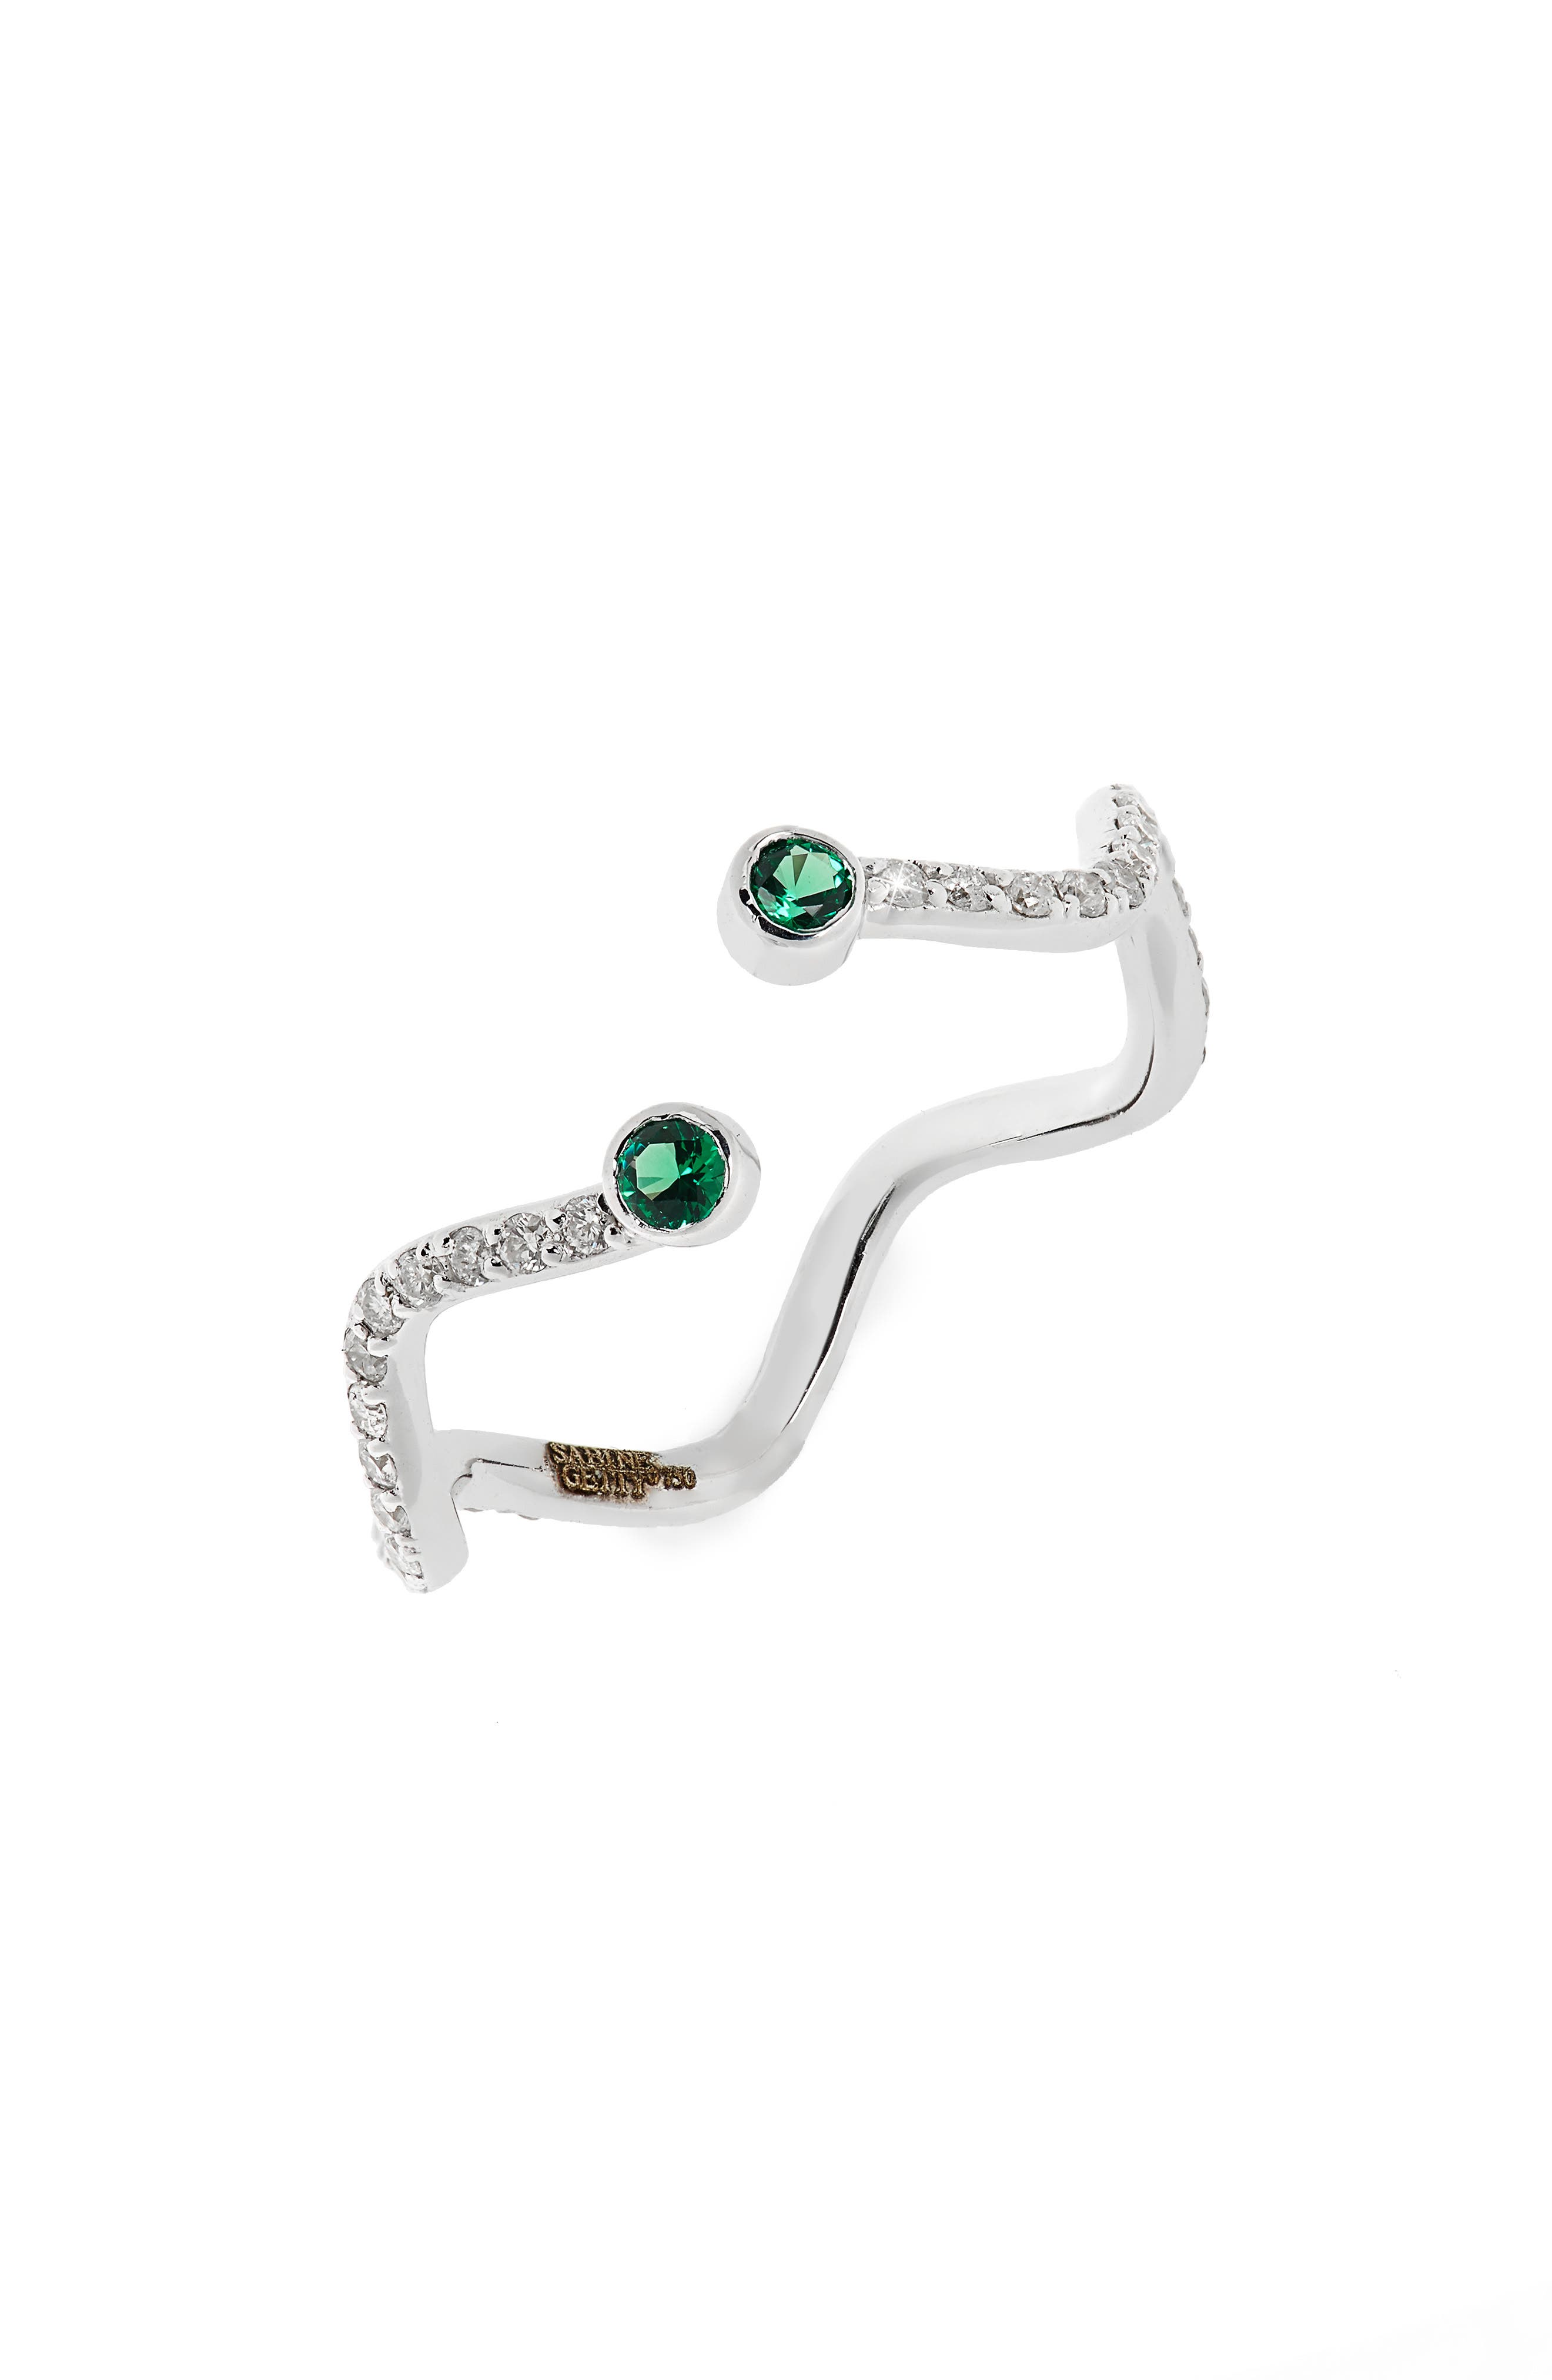 Baby Memphis Wiggly Snake Ring,                         Main,                         color, White Gold Diamond